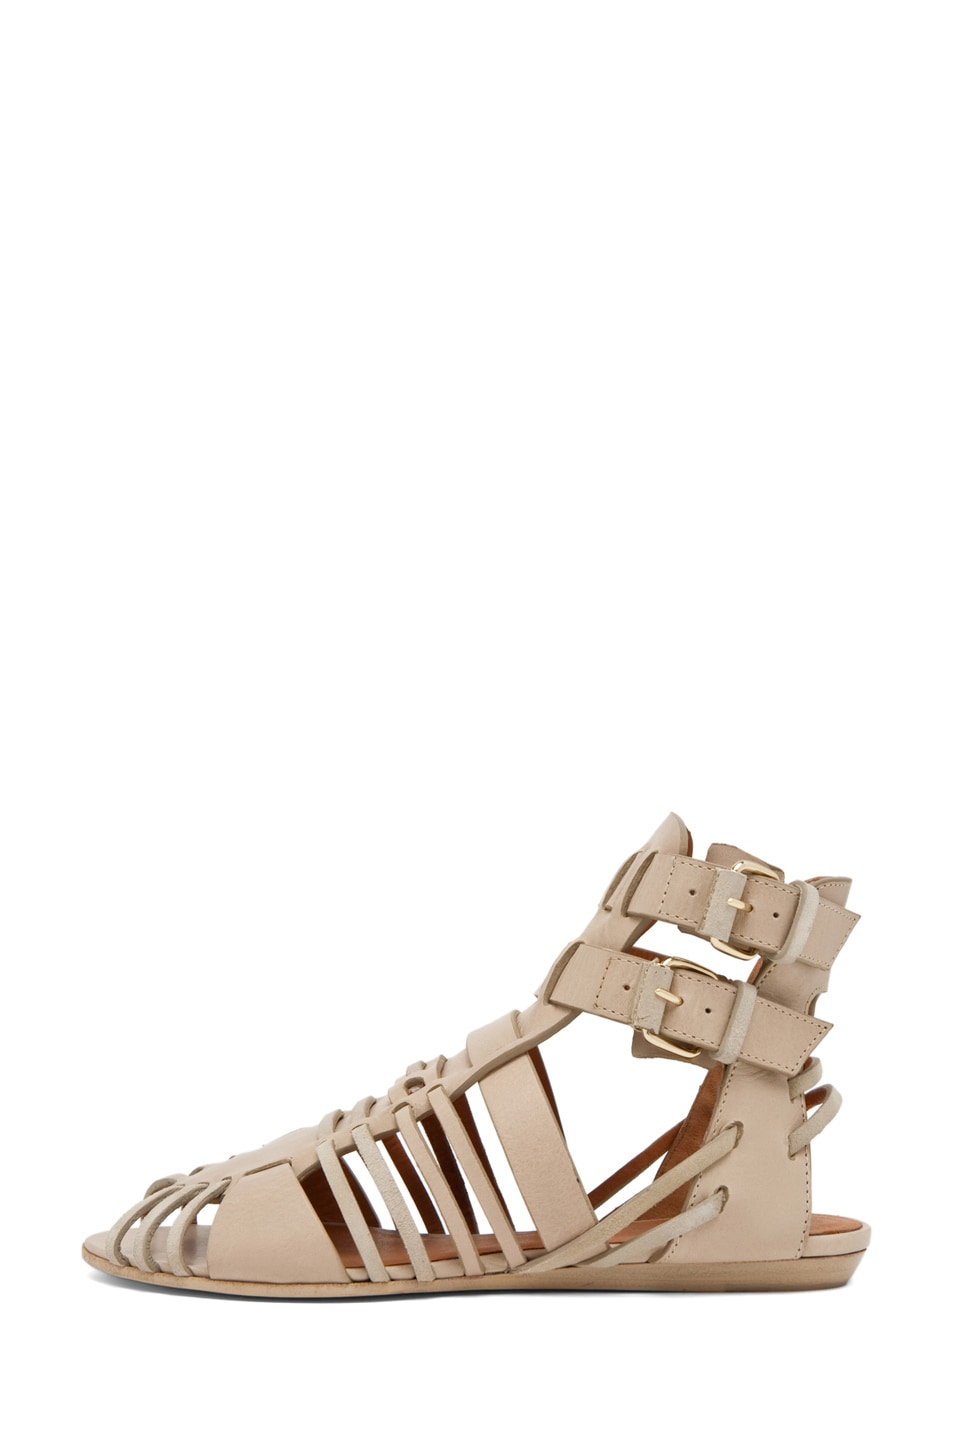 Image 1 of GIVENCHY Gladiator Sandal in Sand